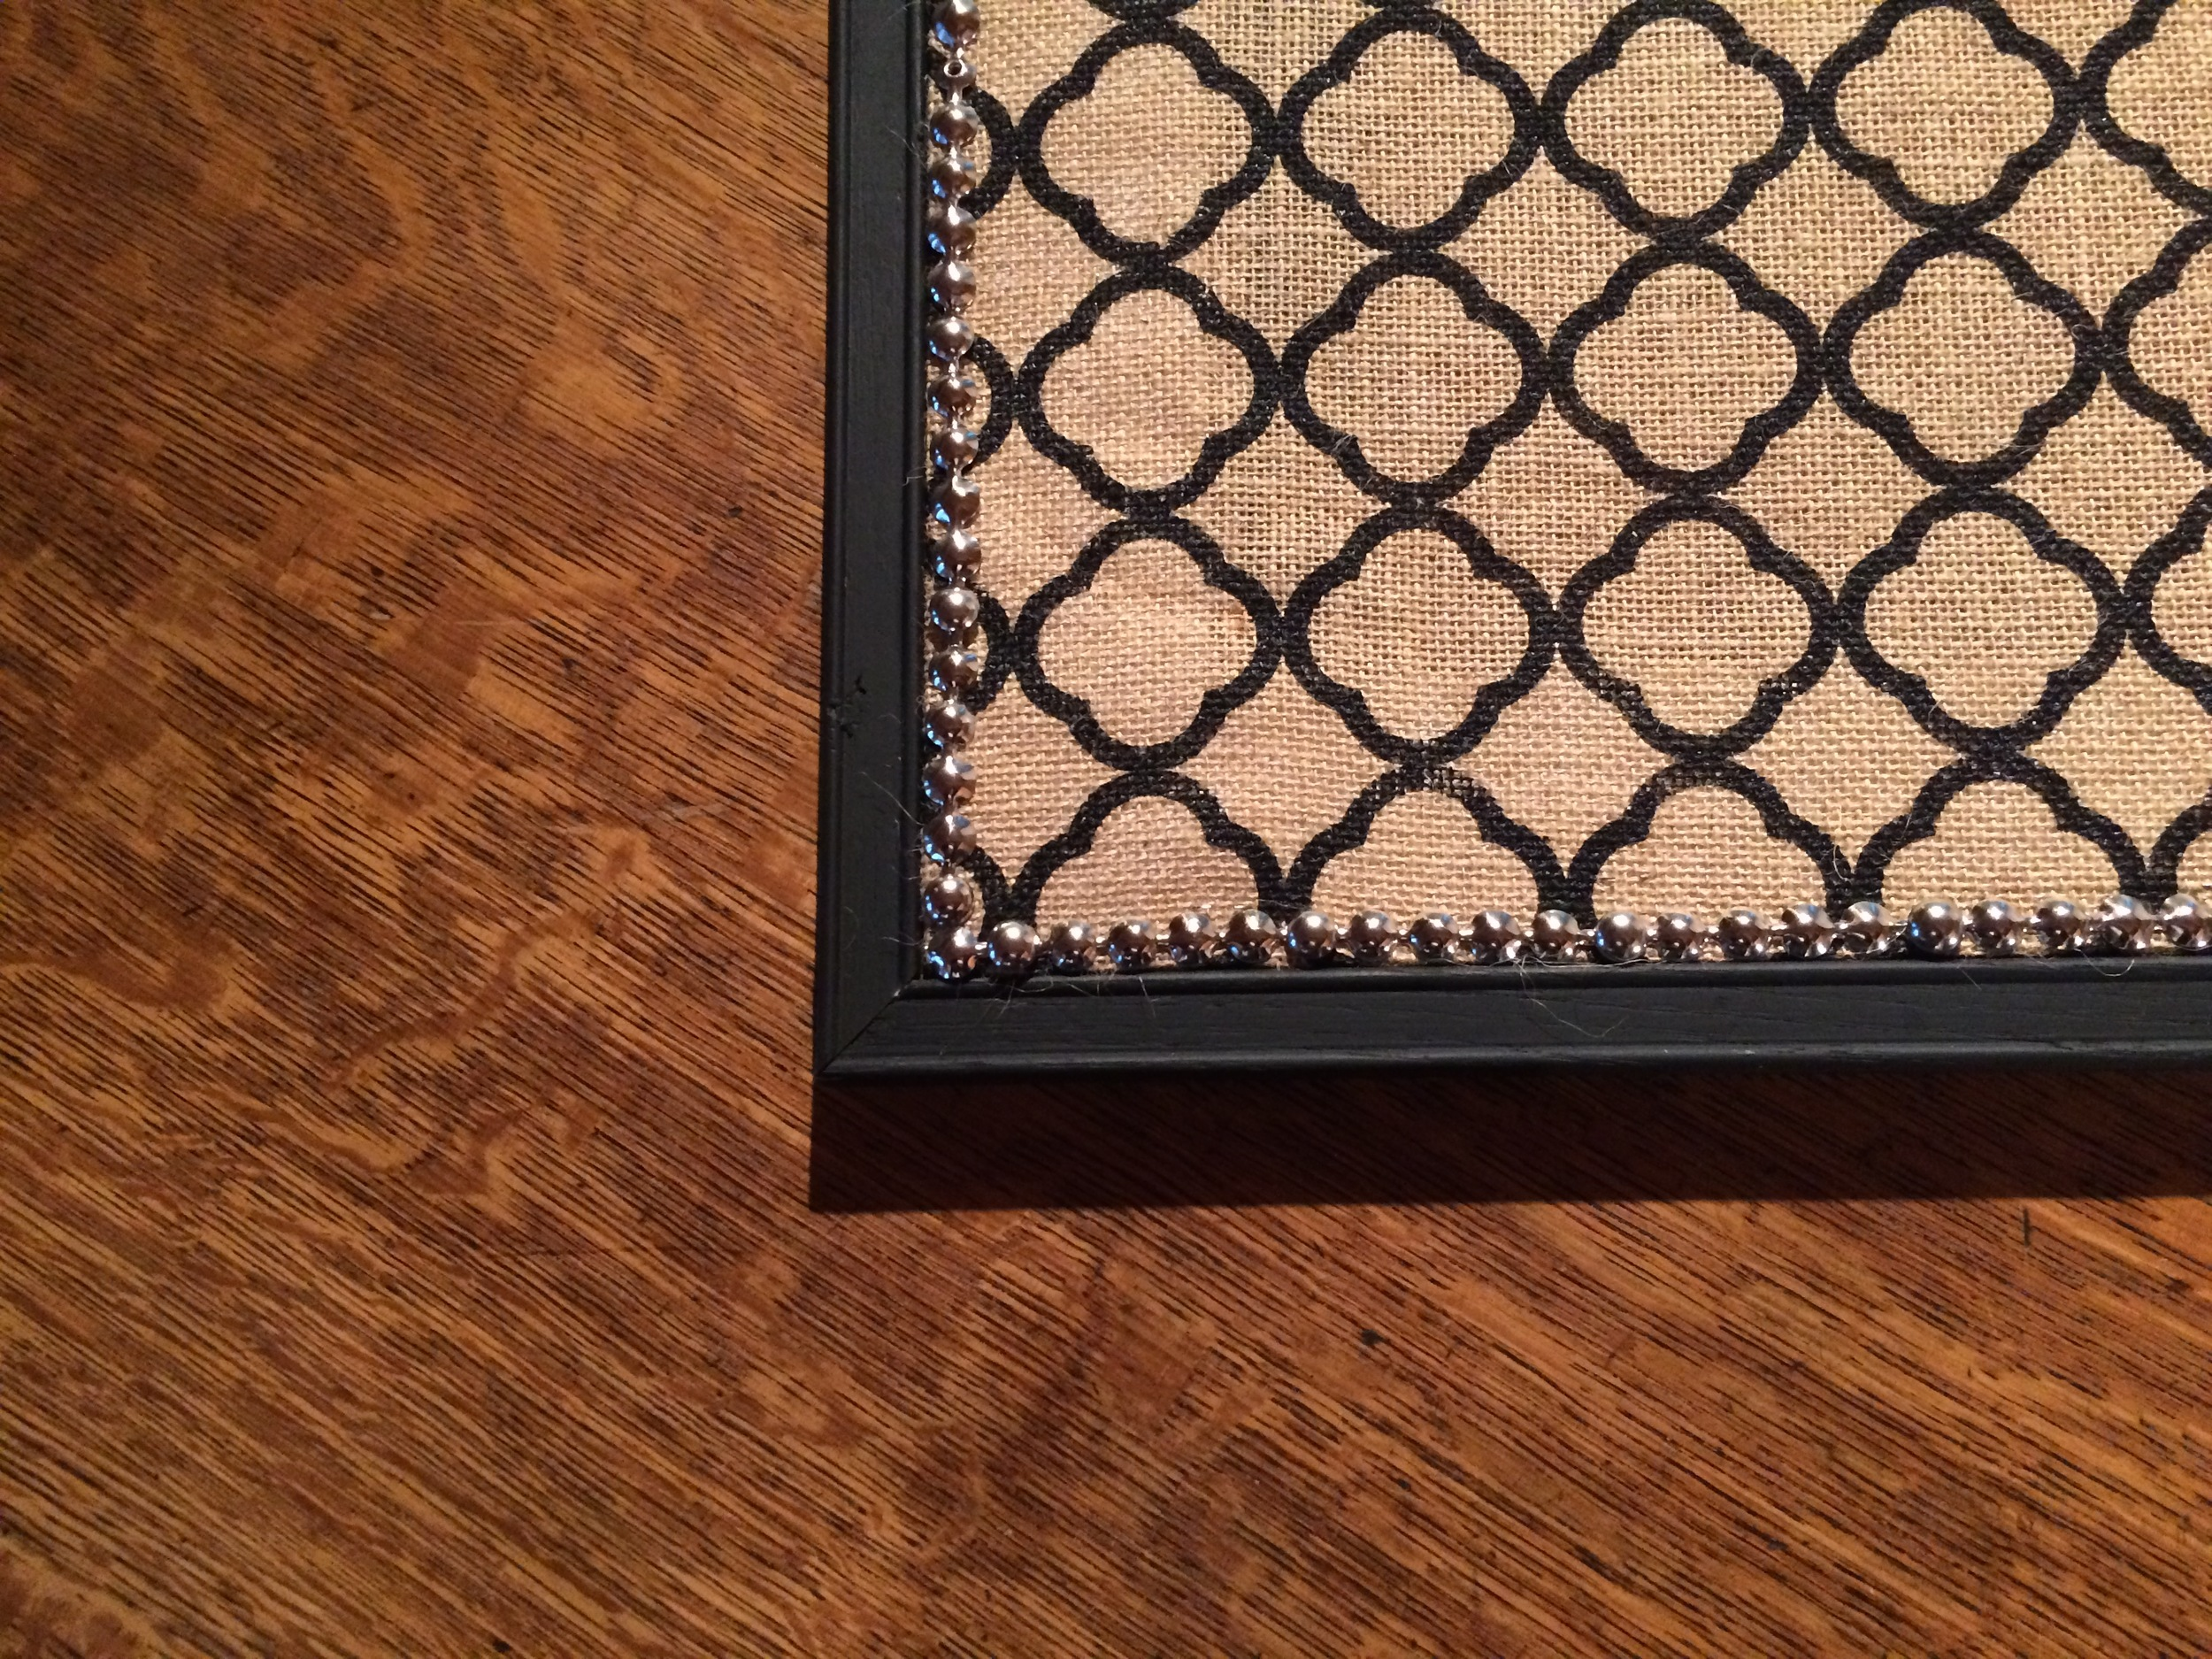 Love the contrast of the rough burlap against the smooth shiny trim.